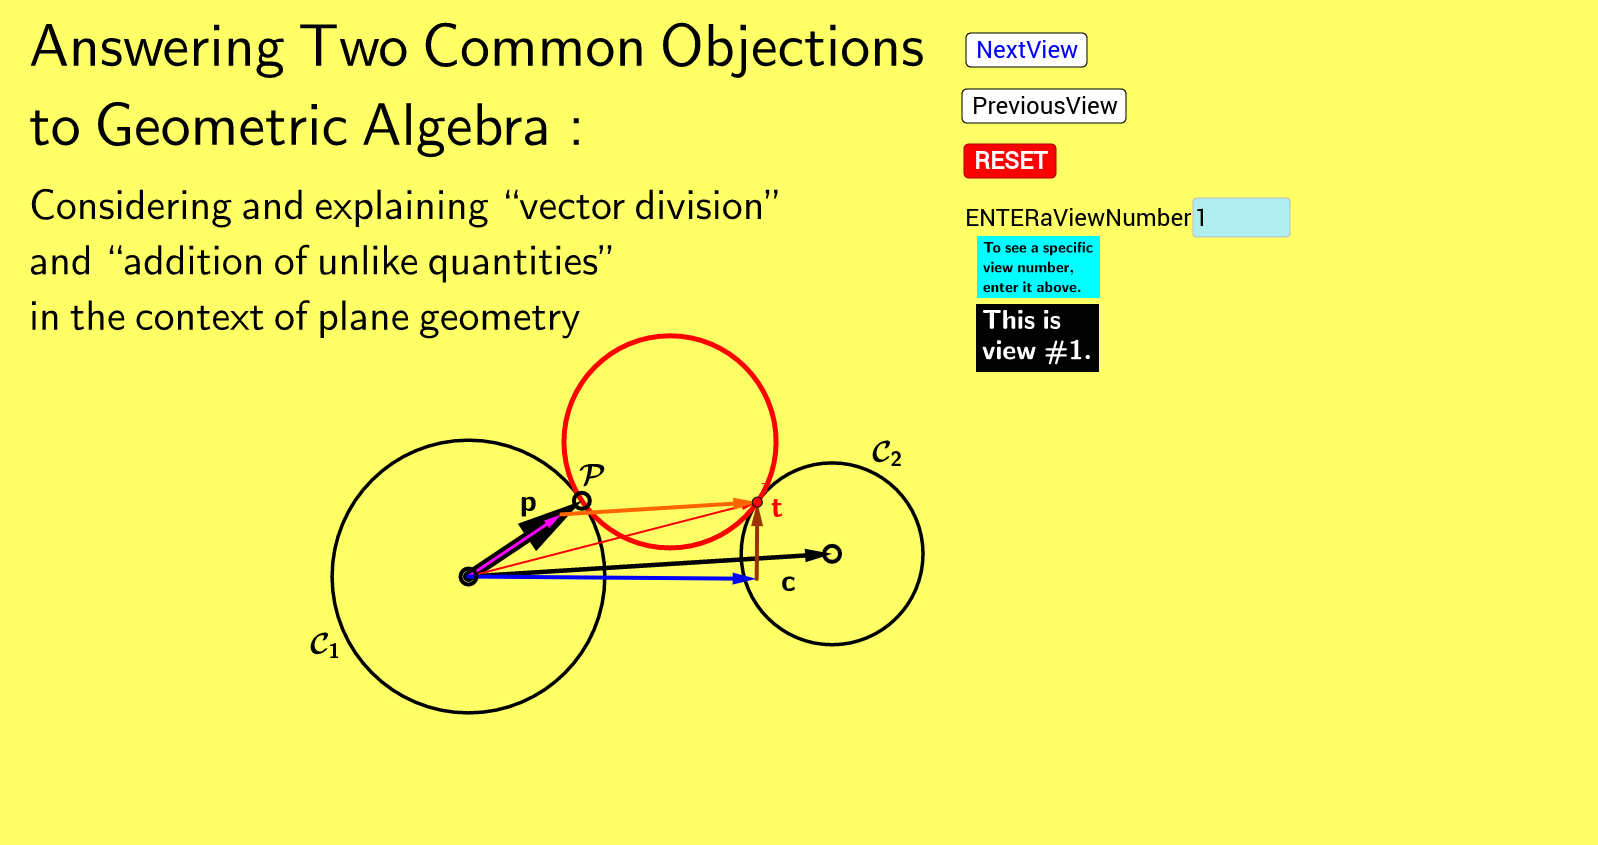 Answering Two Common Objections to Geometric Algebra